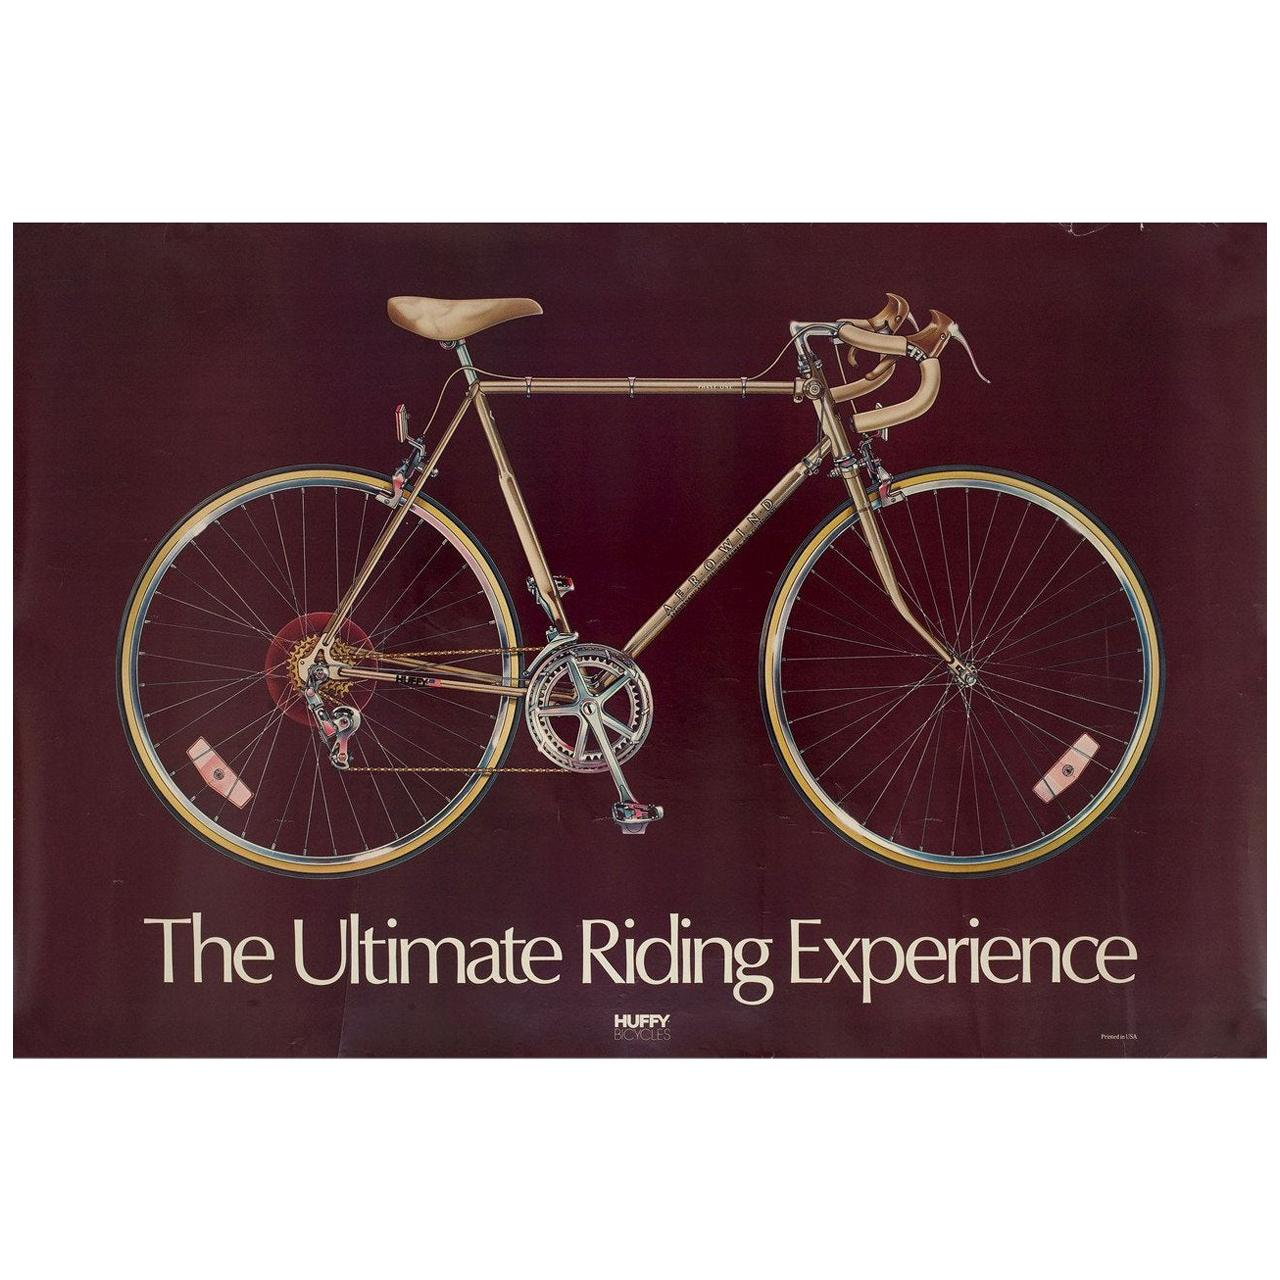 Huffy The Ultimate Riding Experience 1980s U.S. A1 Poster